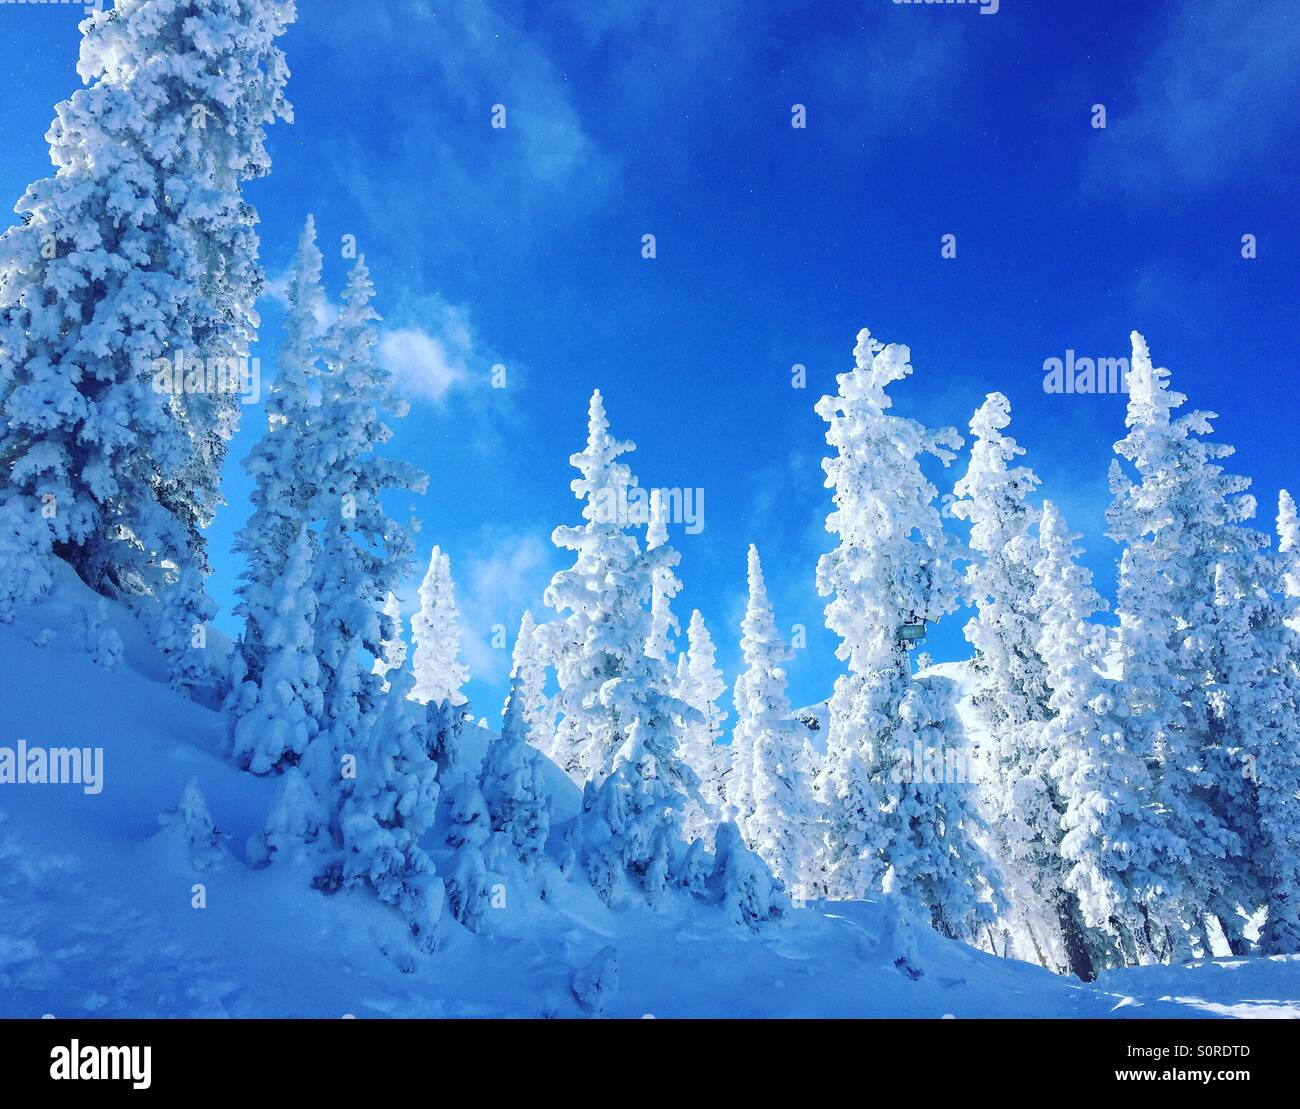 Snow-covered trees against a blue sky. - Stock Image